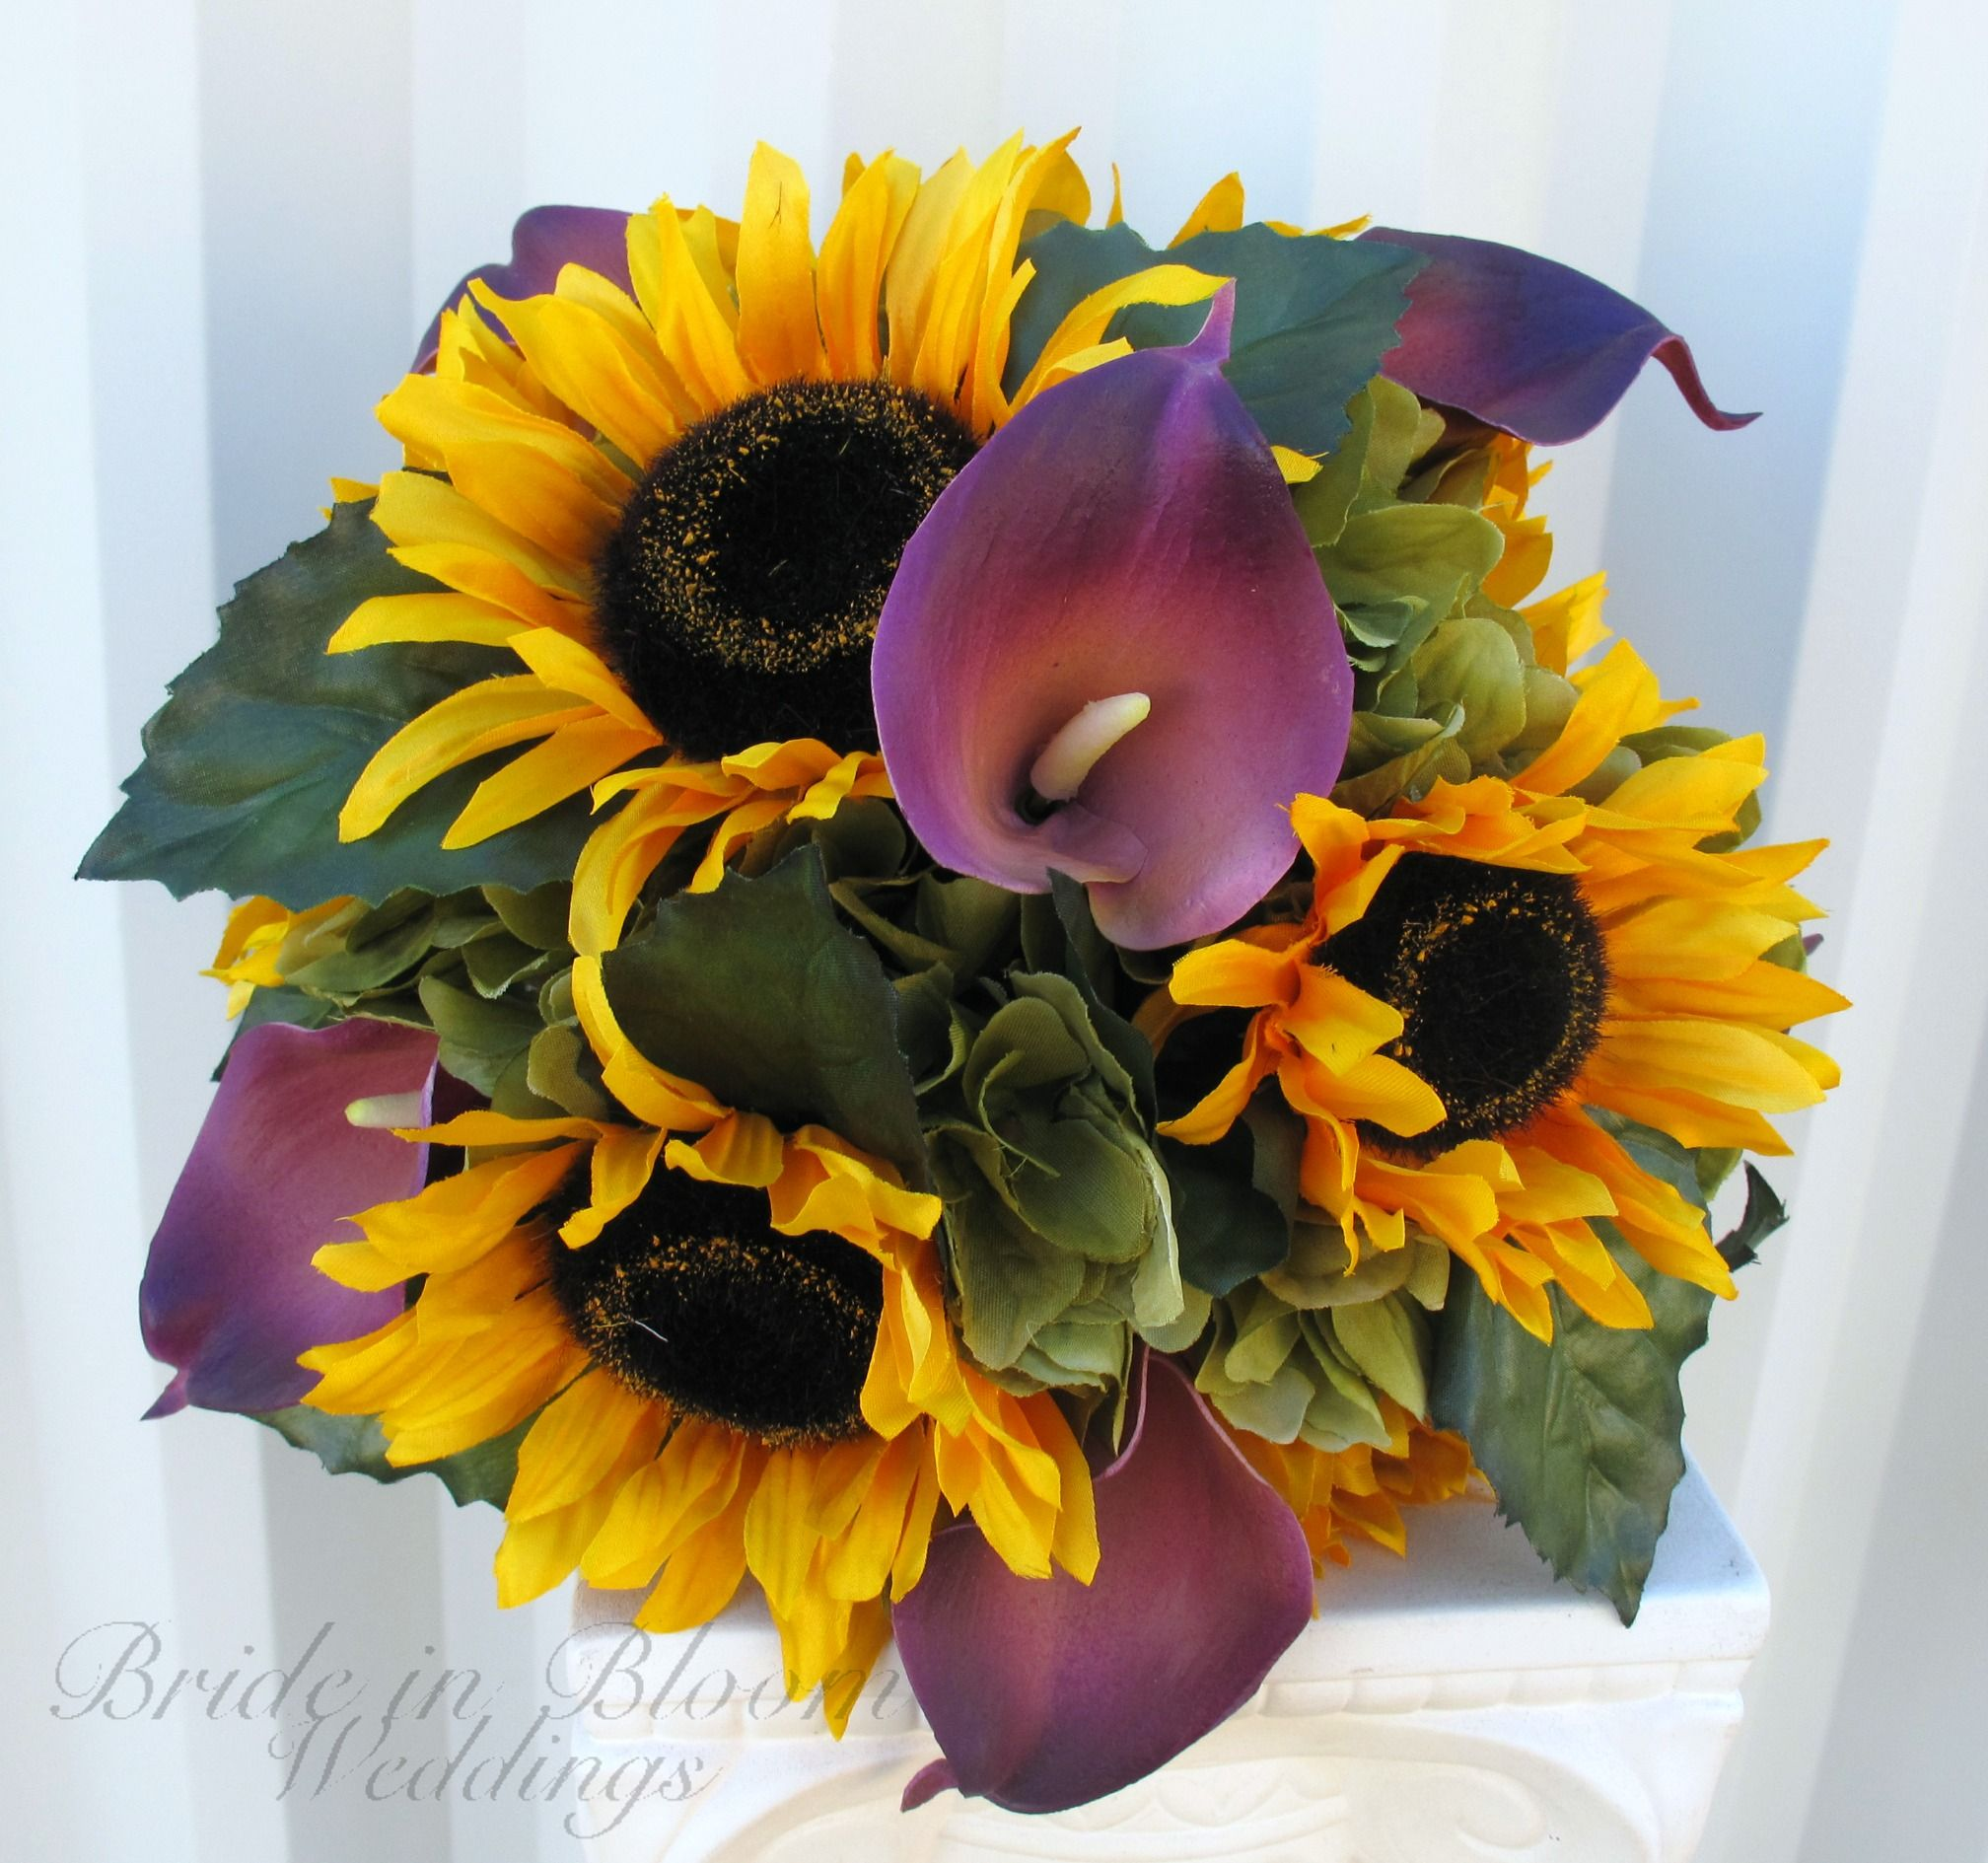 Bridal bouquet sunflower purple calla lily silk wedding flowers bridal bouquet sunflower purple calla lily silk wedding flowers izmirmasajfo